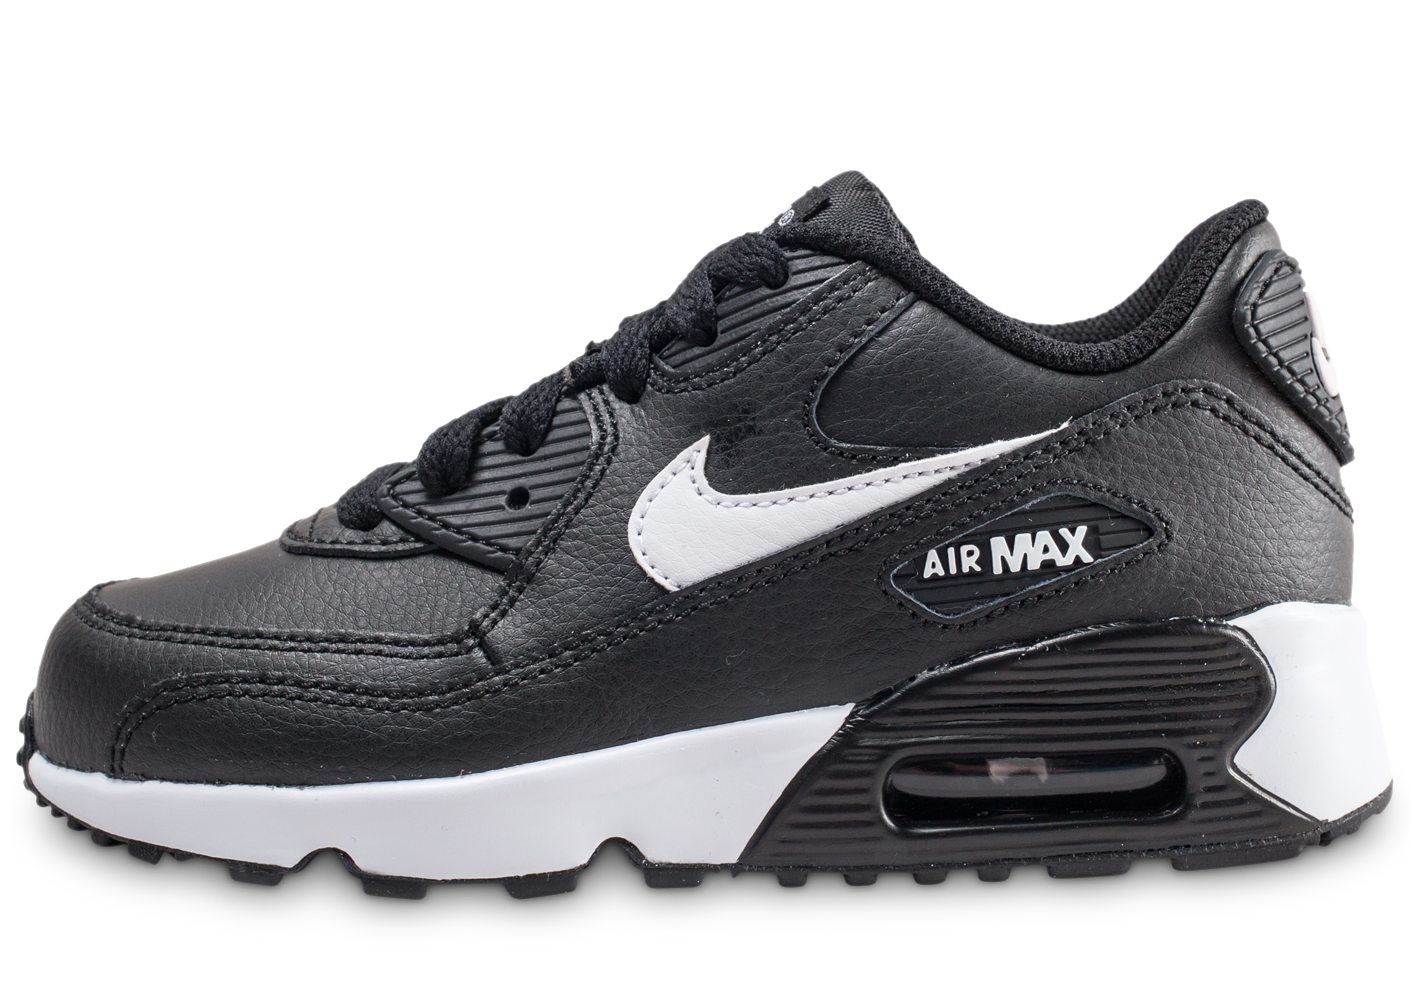 super popular cb7d9 04c8e Nike air max 90 leather noire et blanche enfant.